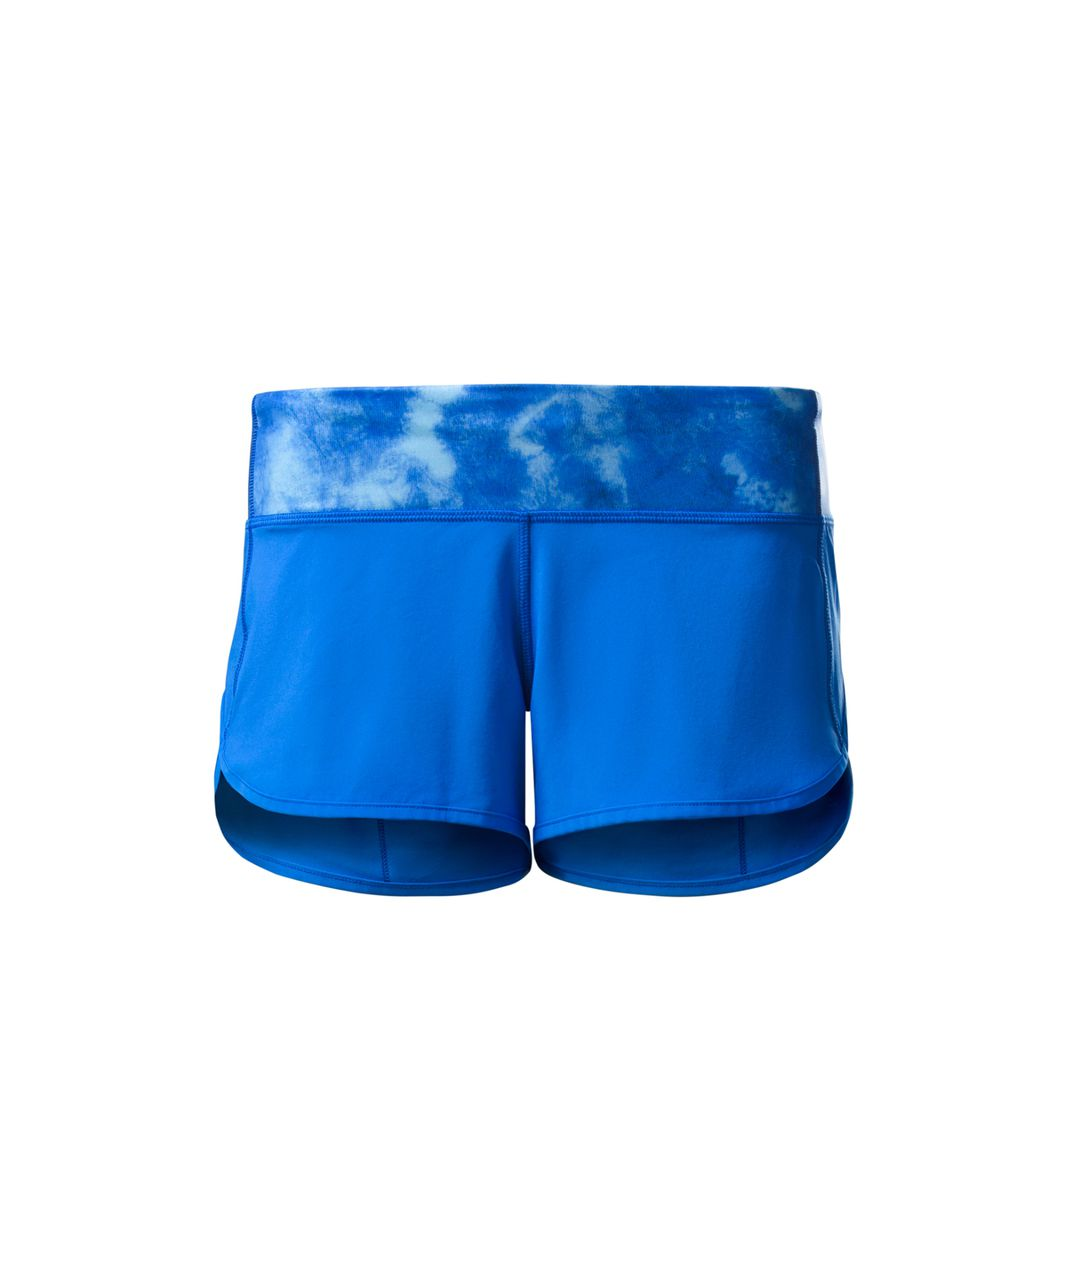 Lululemon Speed Short - Pipe Dream Blue / Tidal Trip Pipe Dream Blue